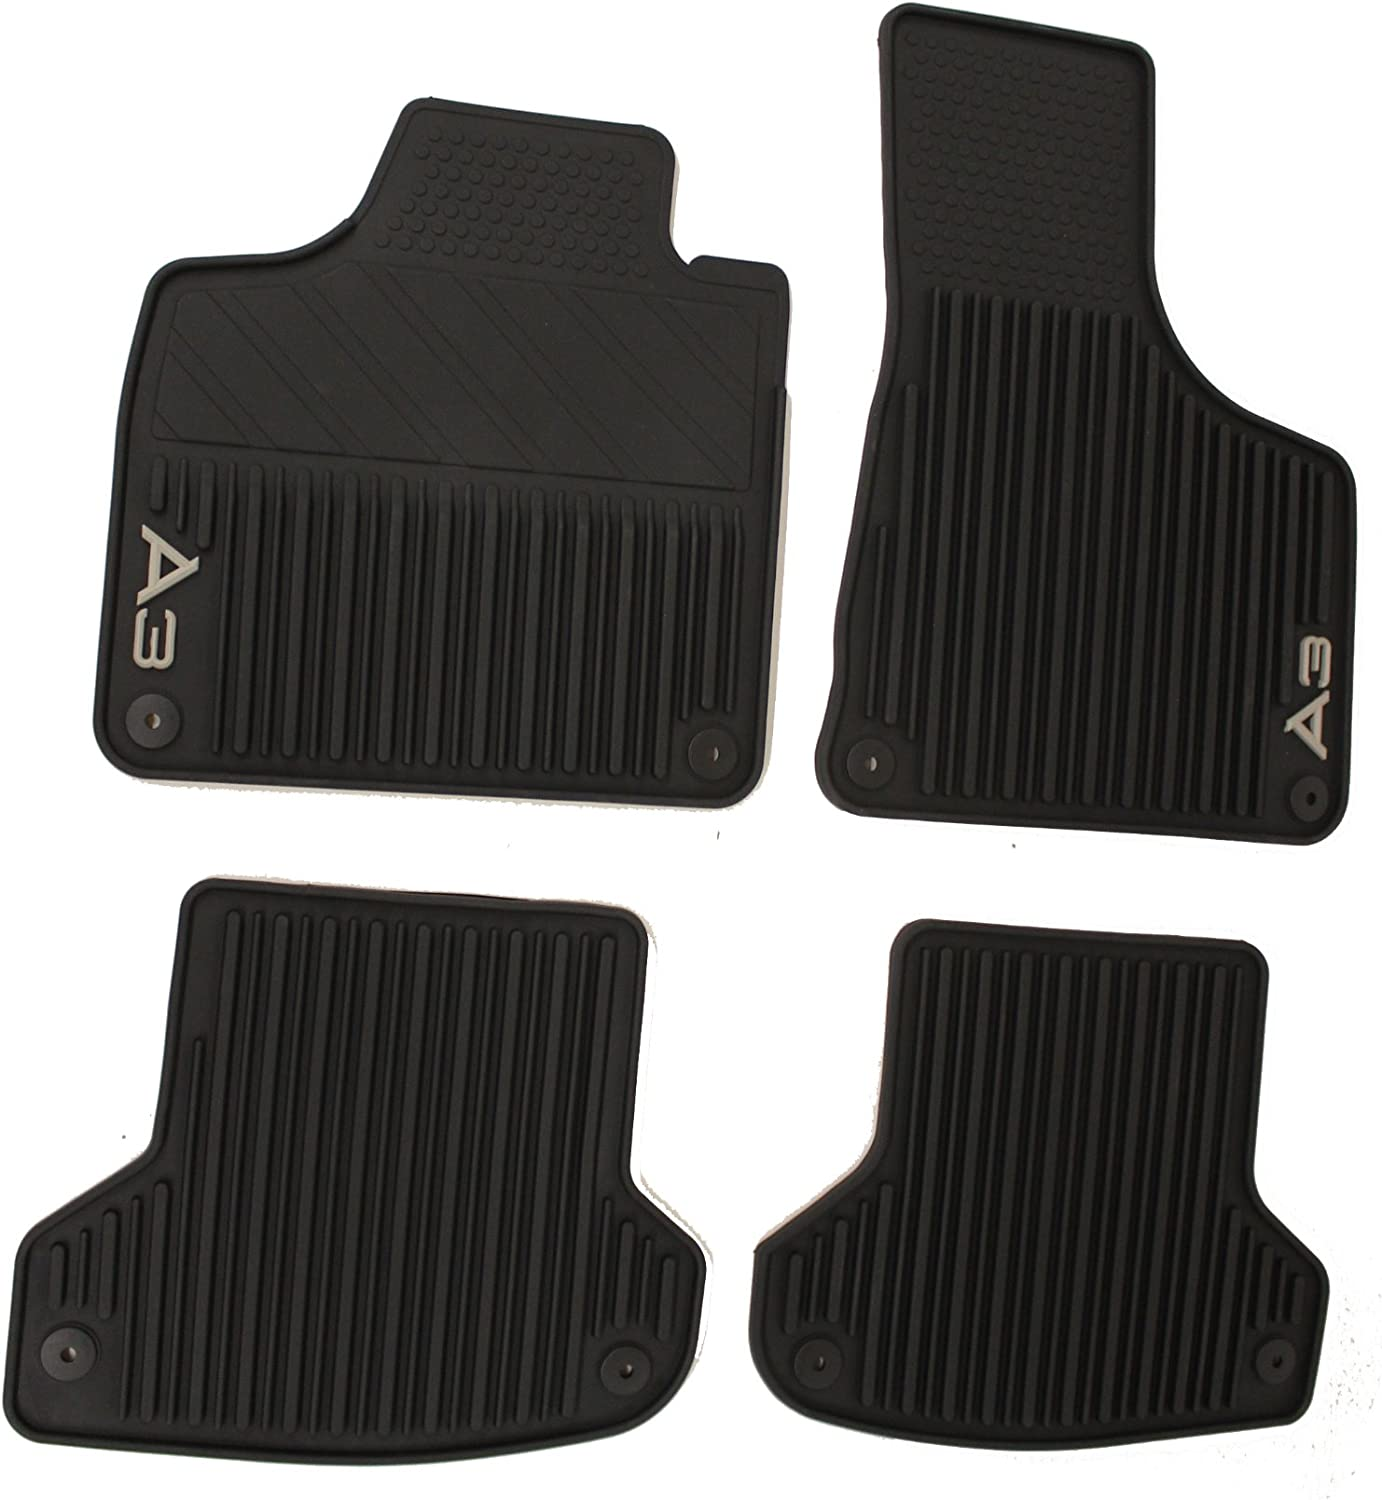 Boot Mat Liner Protector Premium Custom Tailored Fitted Protection Black Waterproof Suitable for AUDI A3 8P Sportback 2003-2012